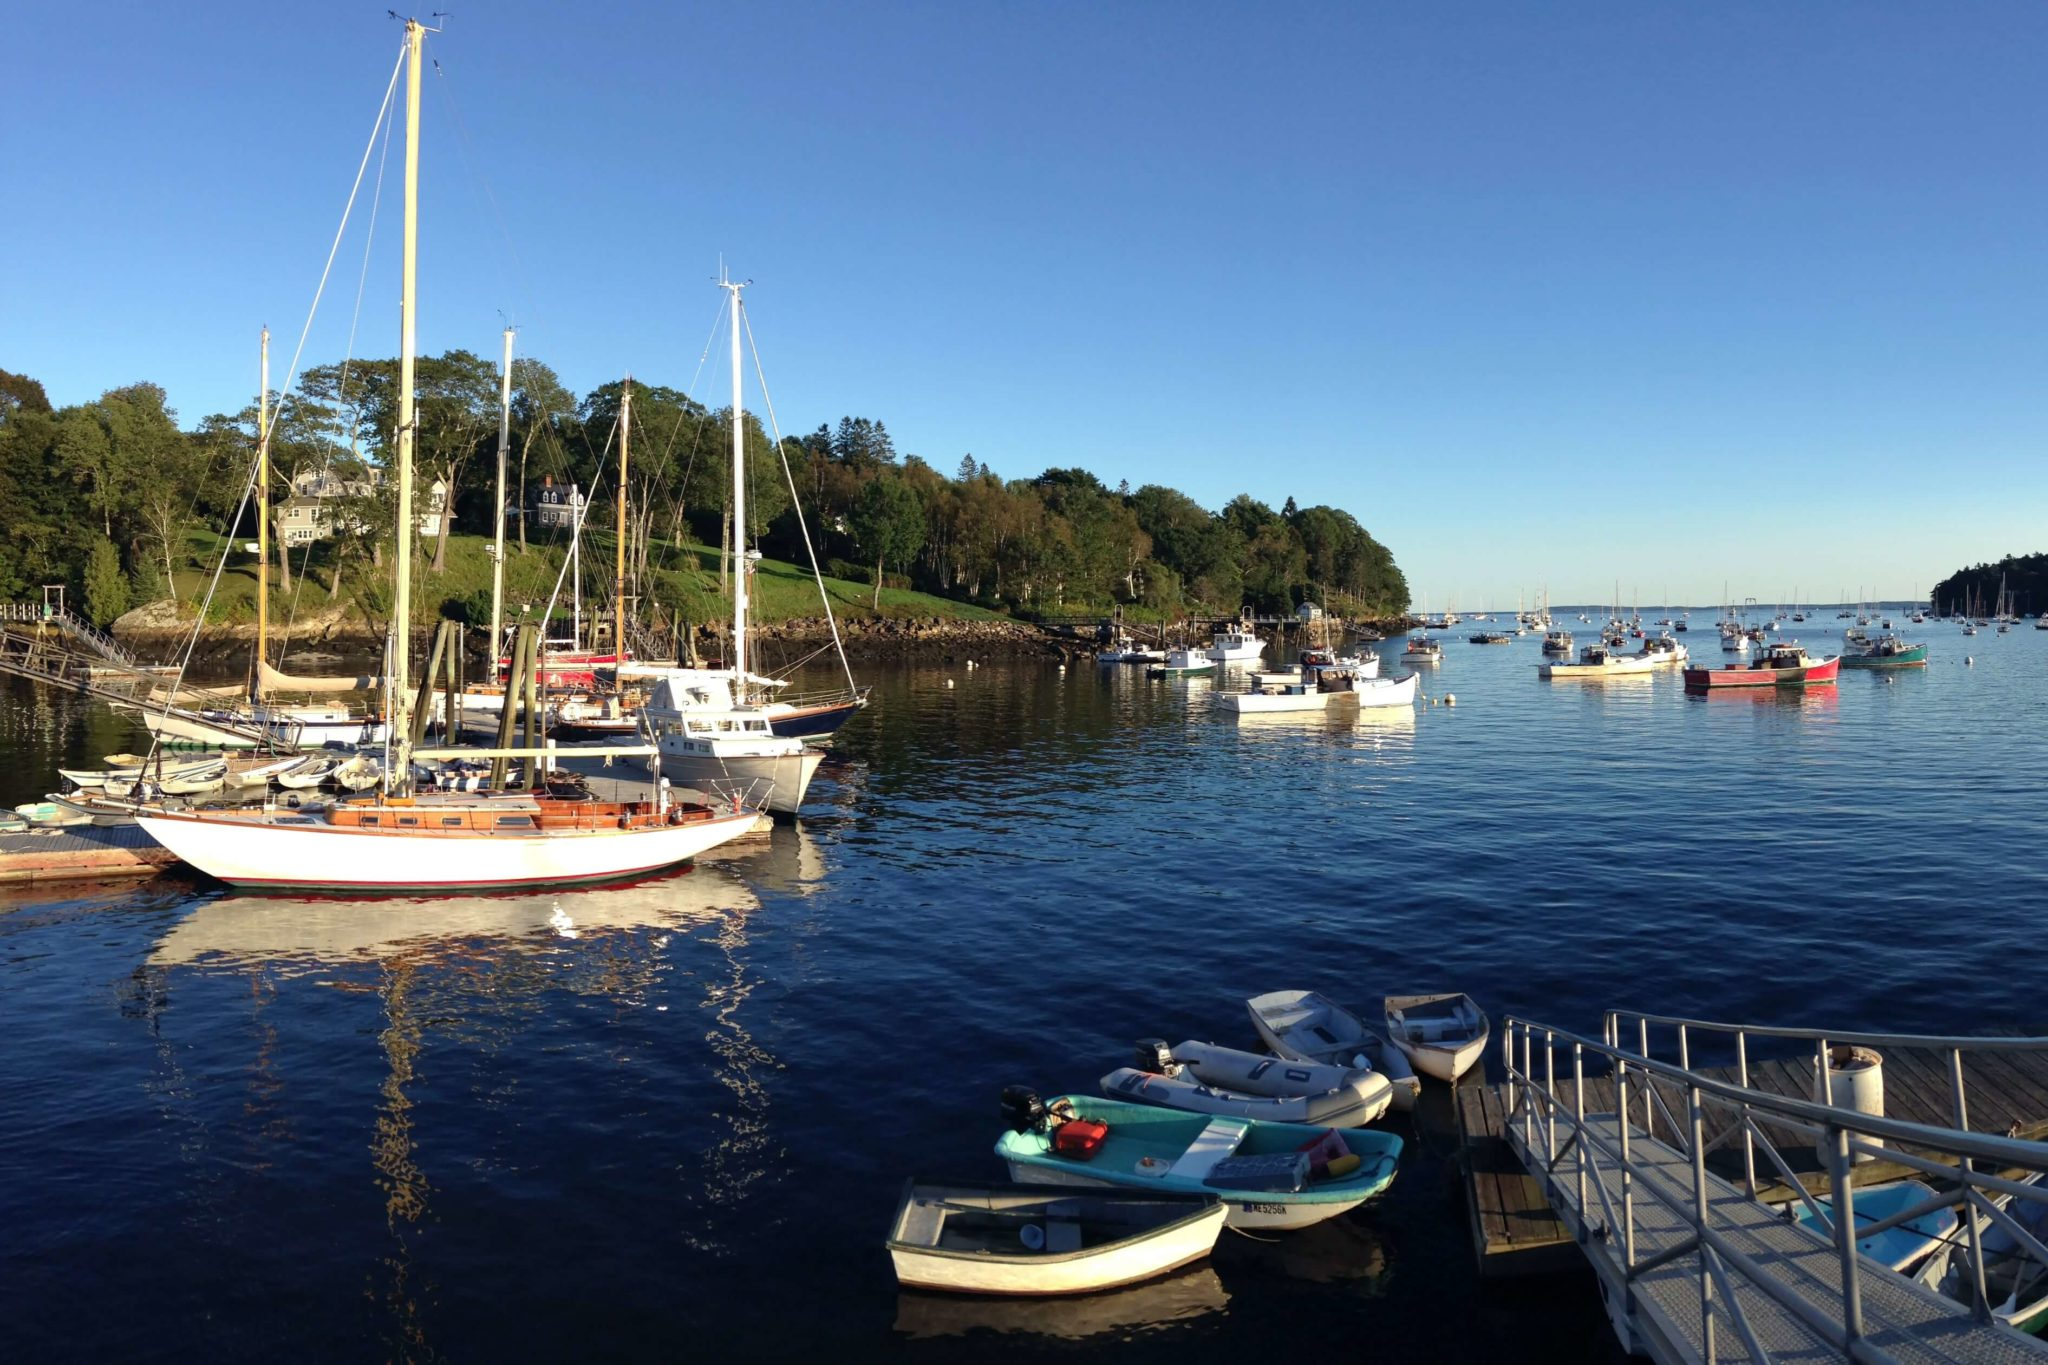 A photo of two boats on the water. Something you might see if you are interested in Camden, Maine sailing.